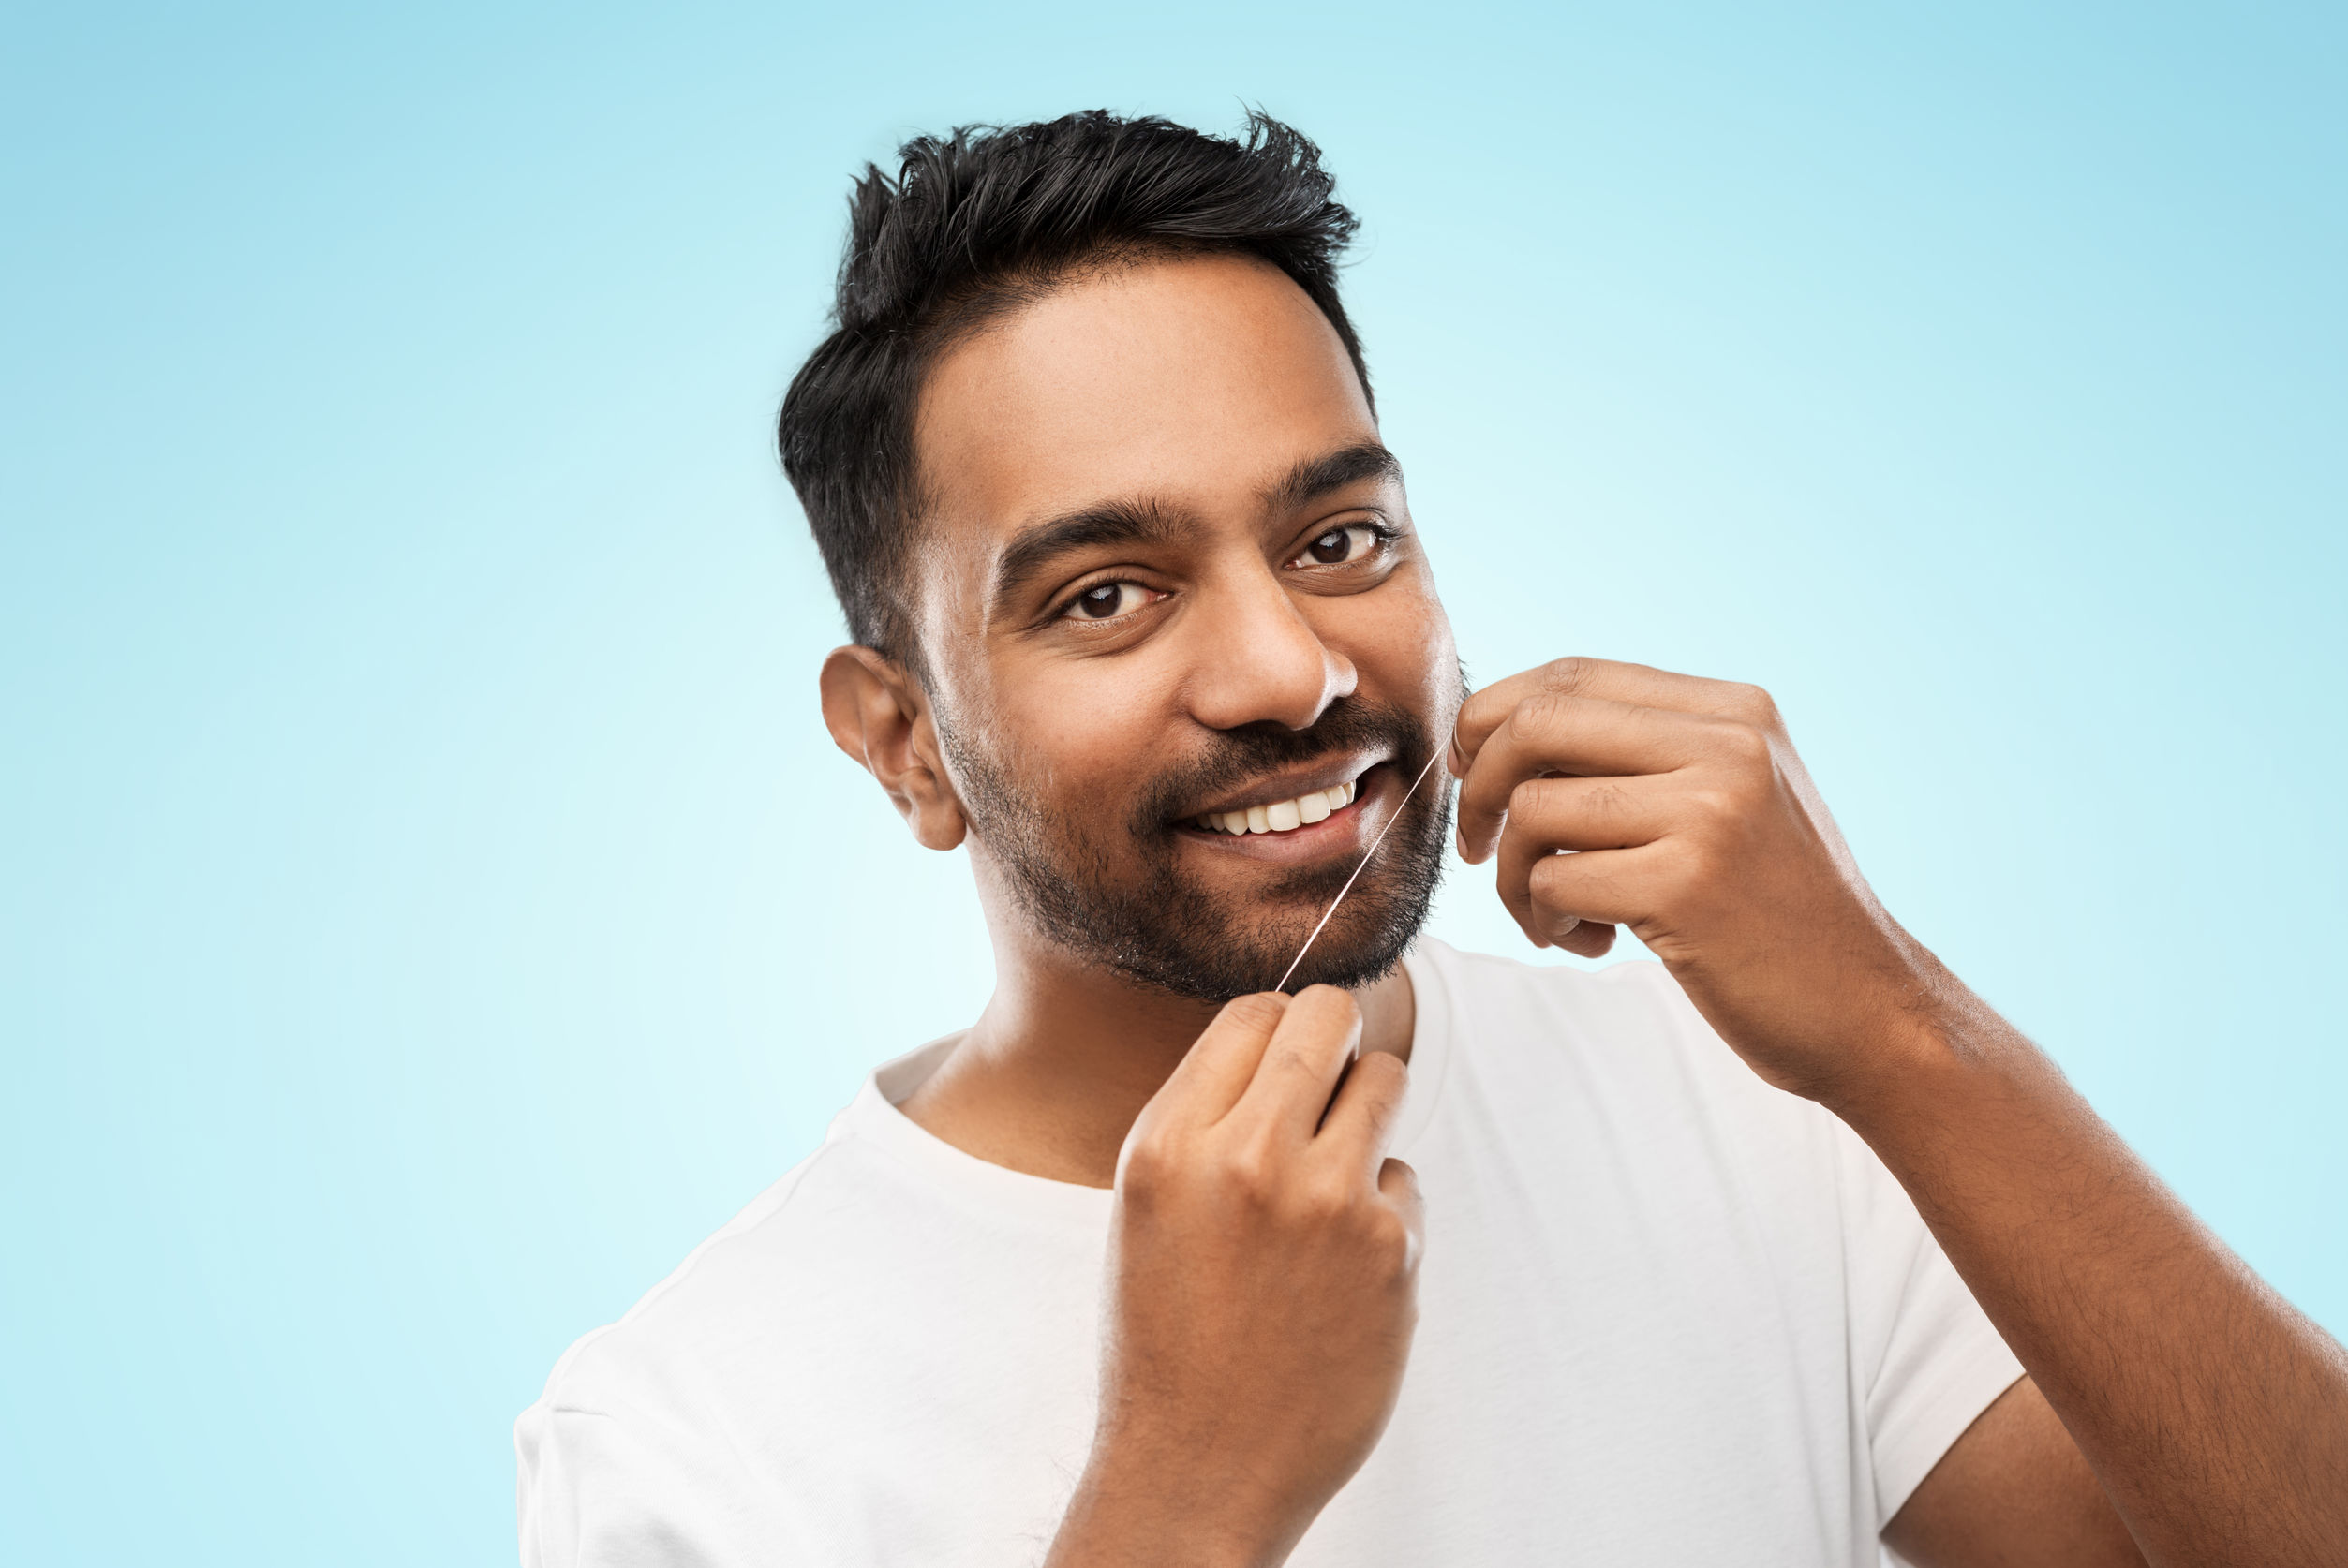 Man flossing with scented dental floss